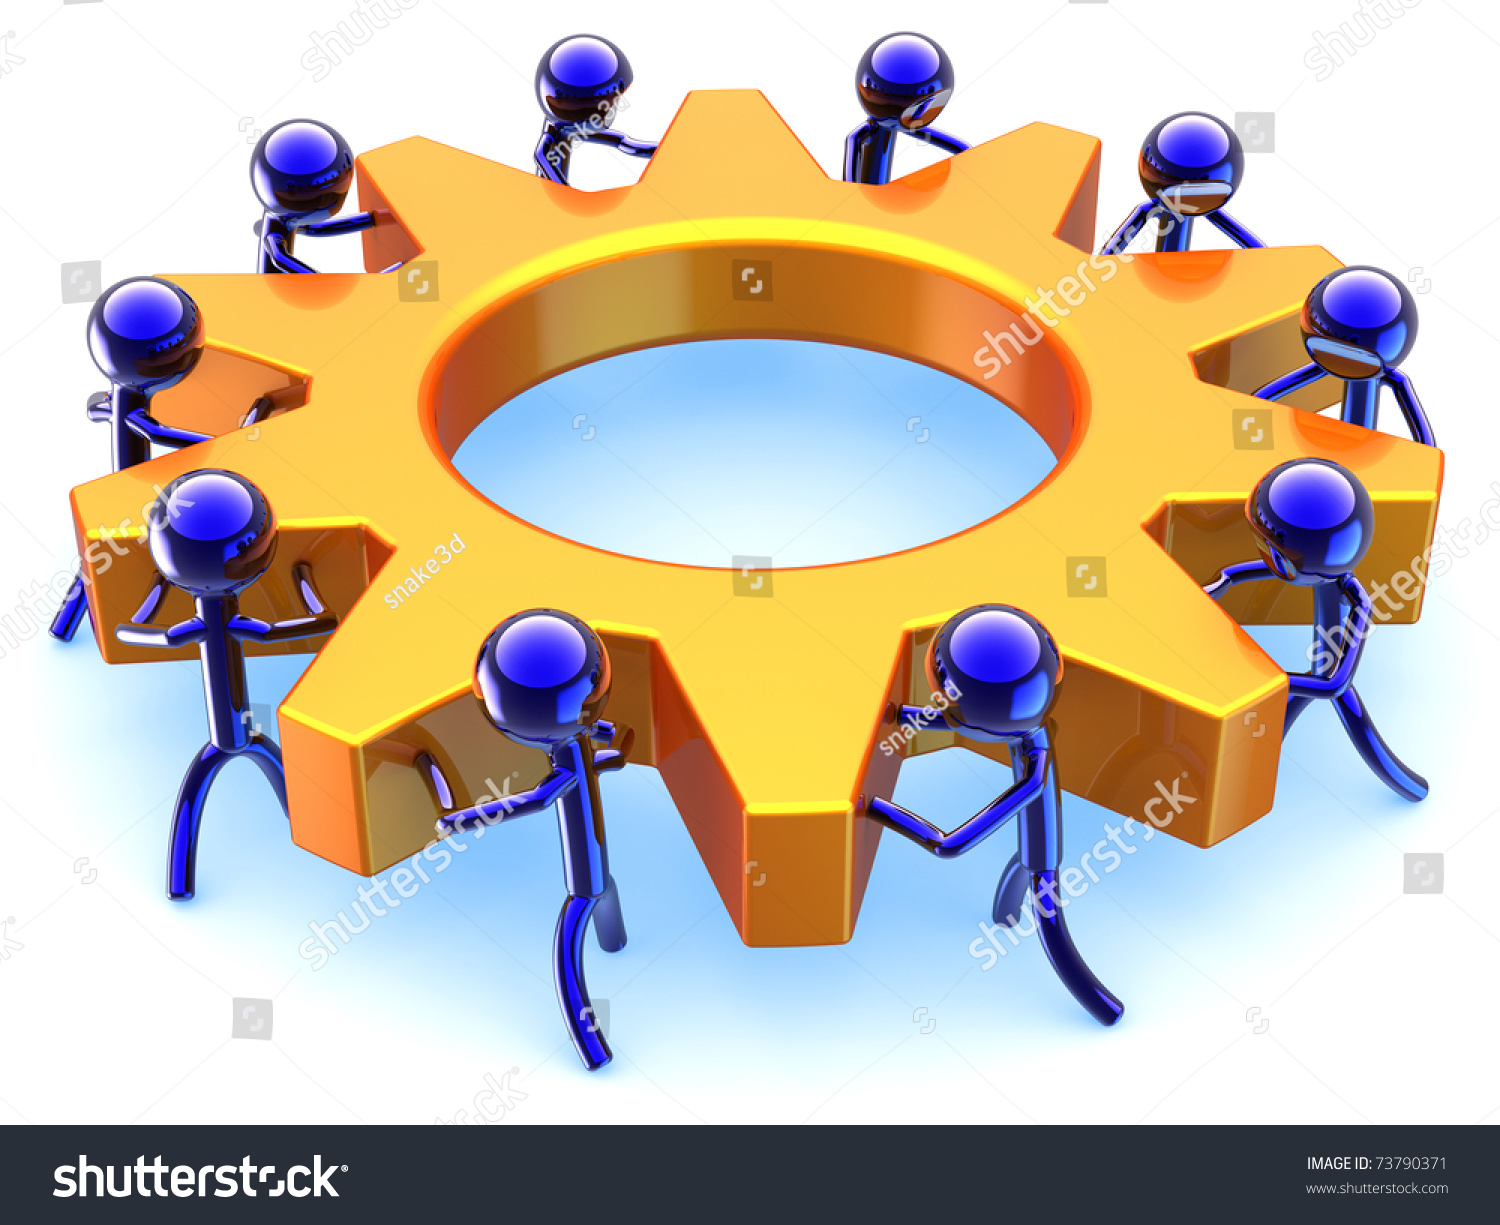 Business teamwork efficiency dream team cooperation stock dream team cooperation abstract success of community concept stylized characters sciox Gallery